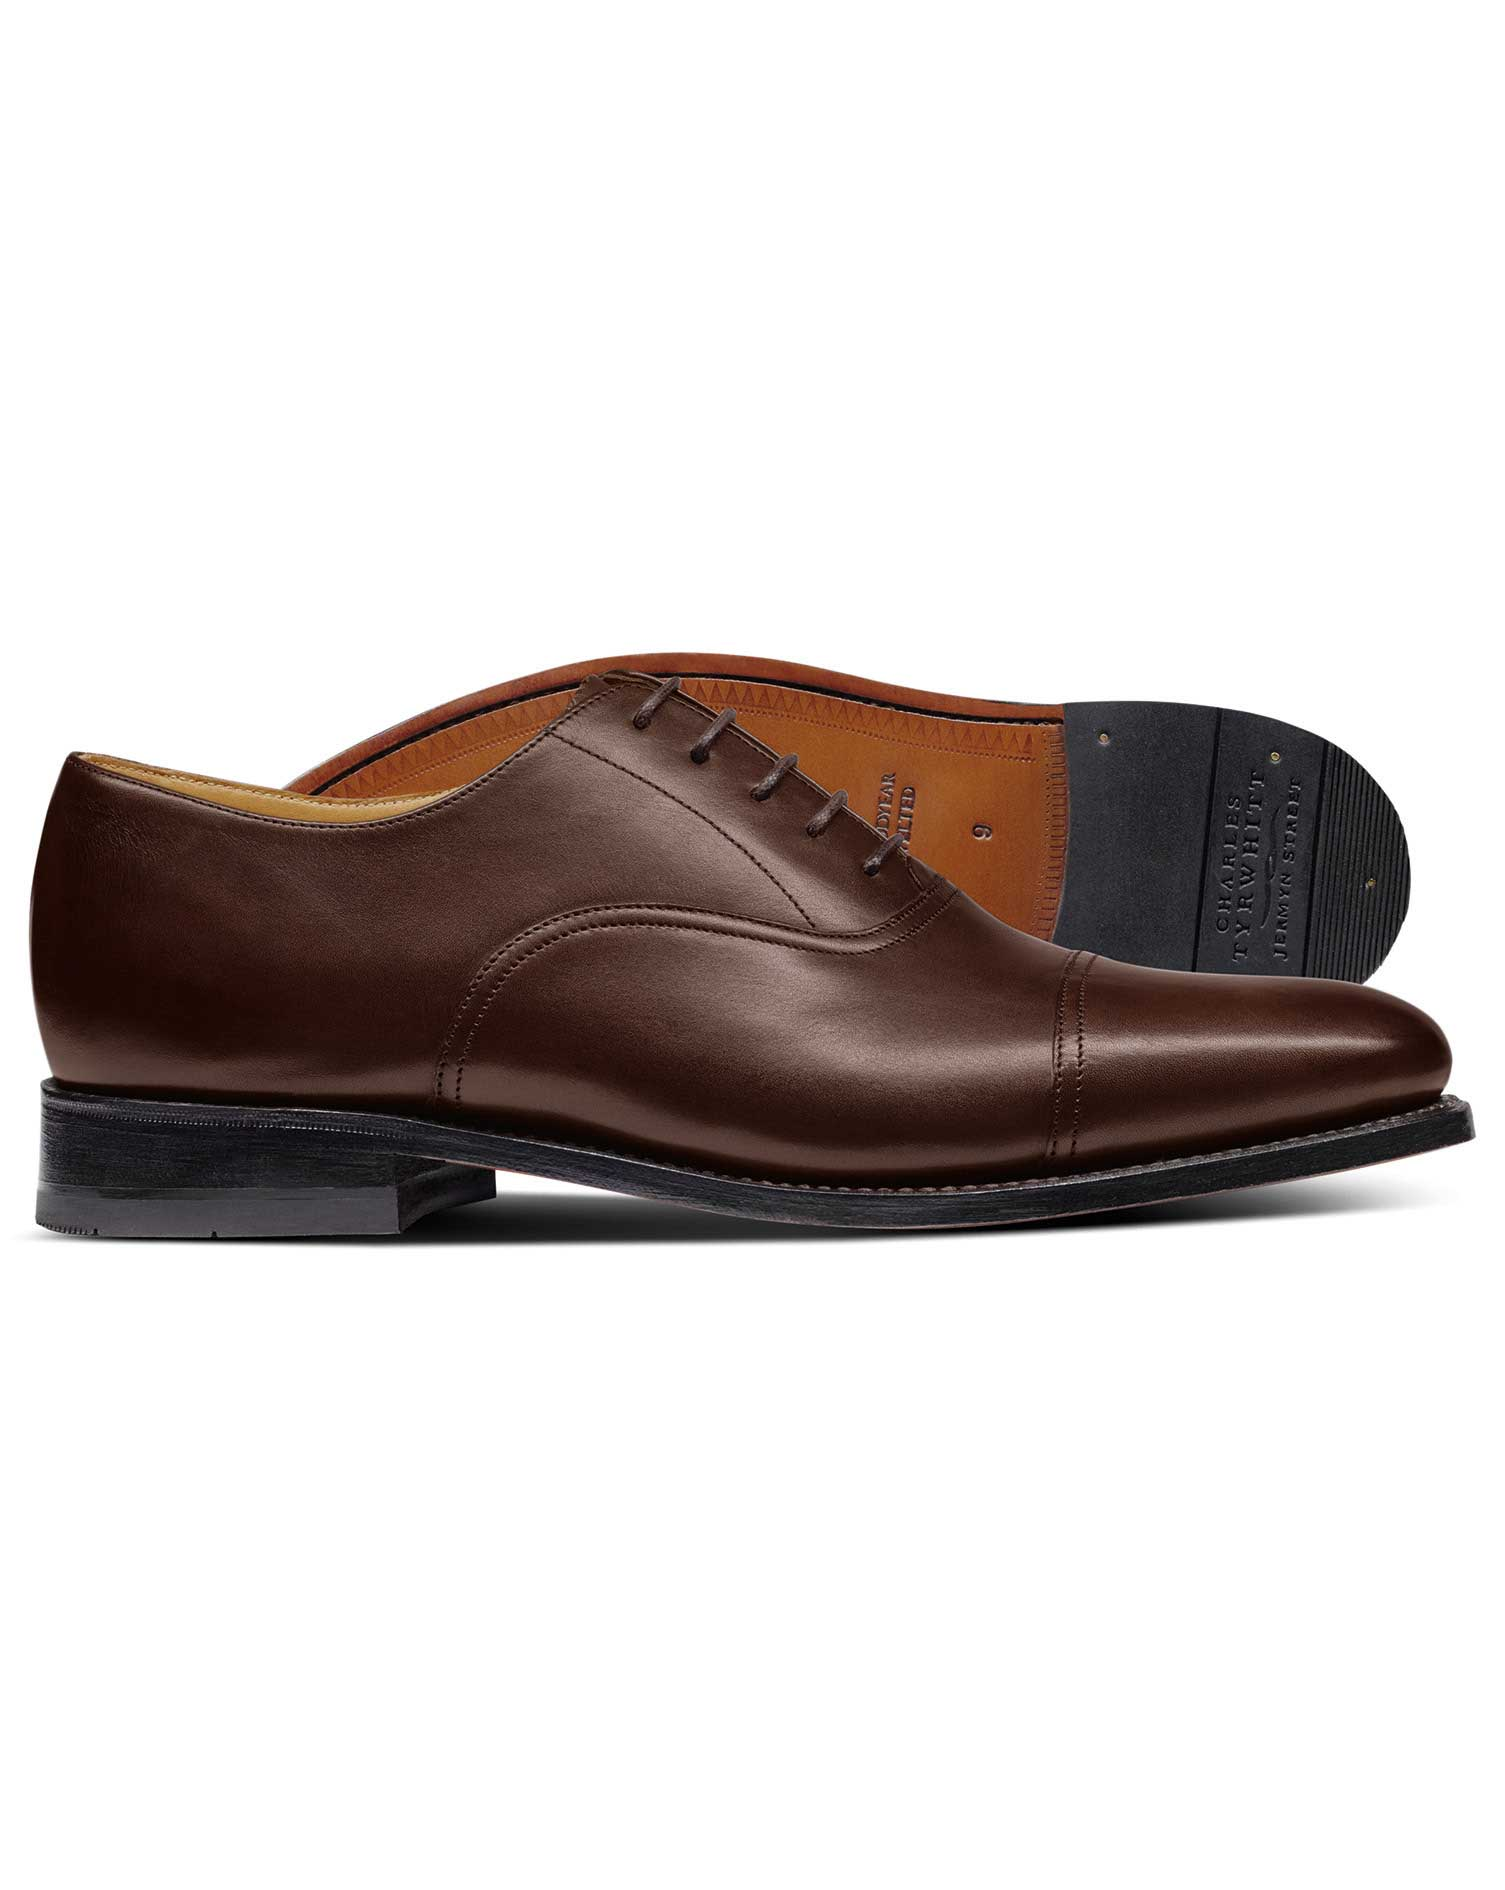 Chocolate Goodyear Welted Oxford Shoe Size 10 W by Charles Tyrwhitt